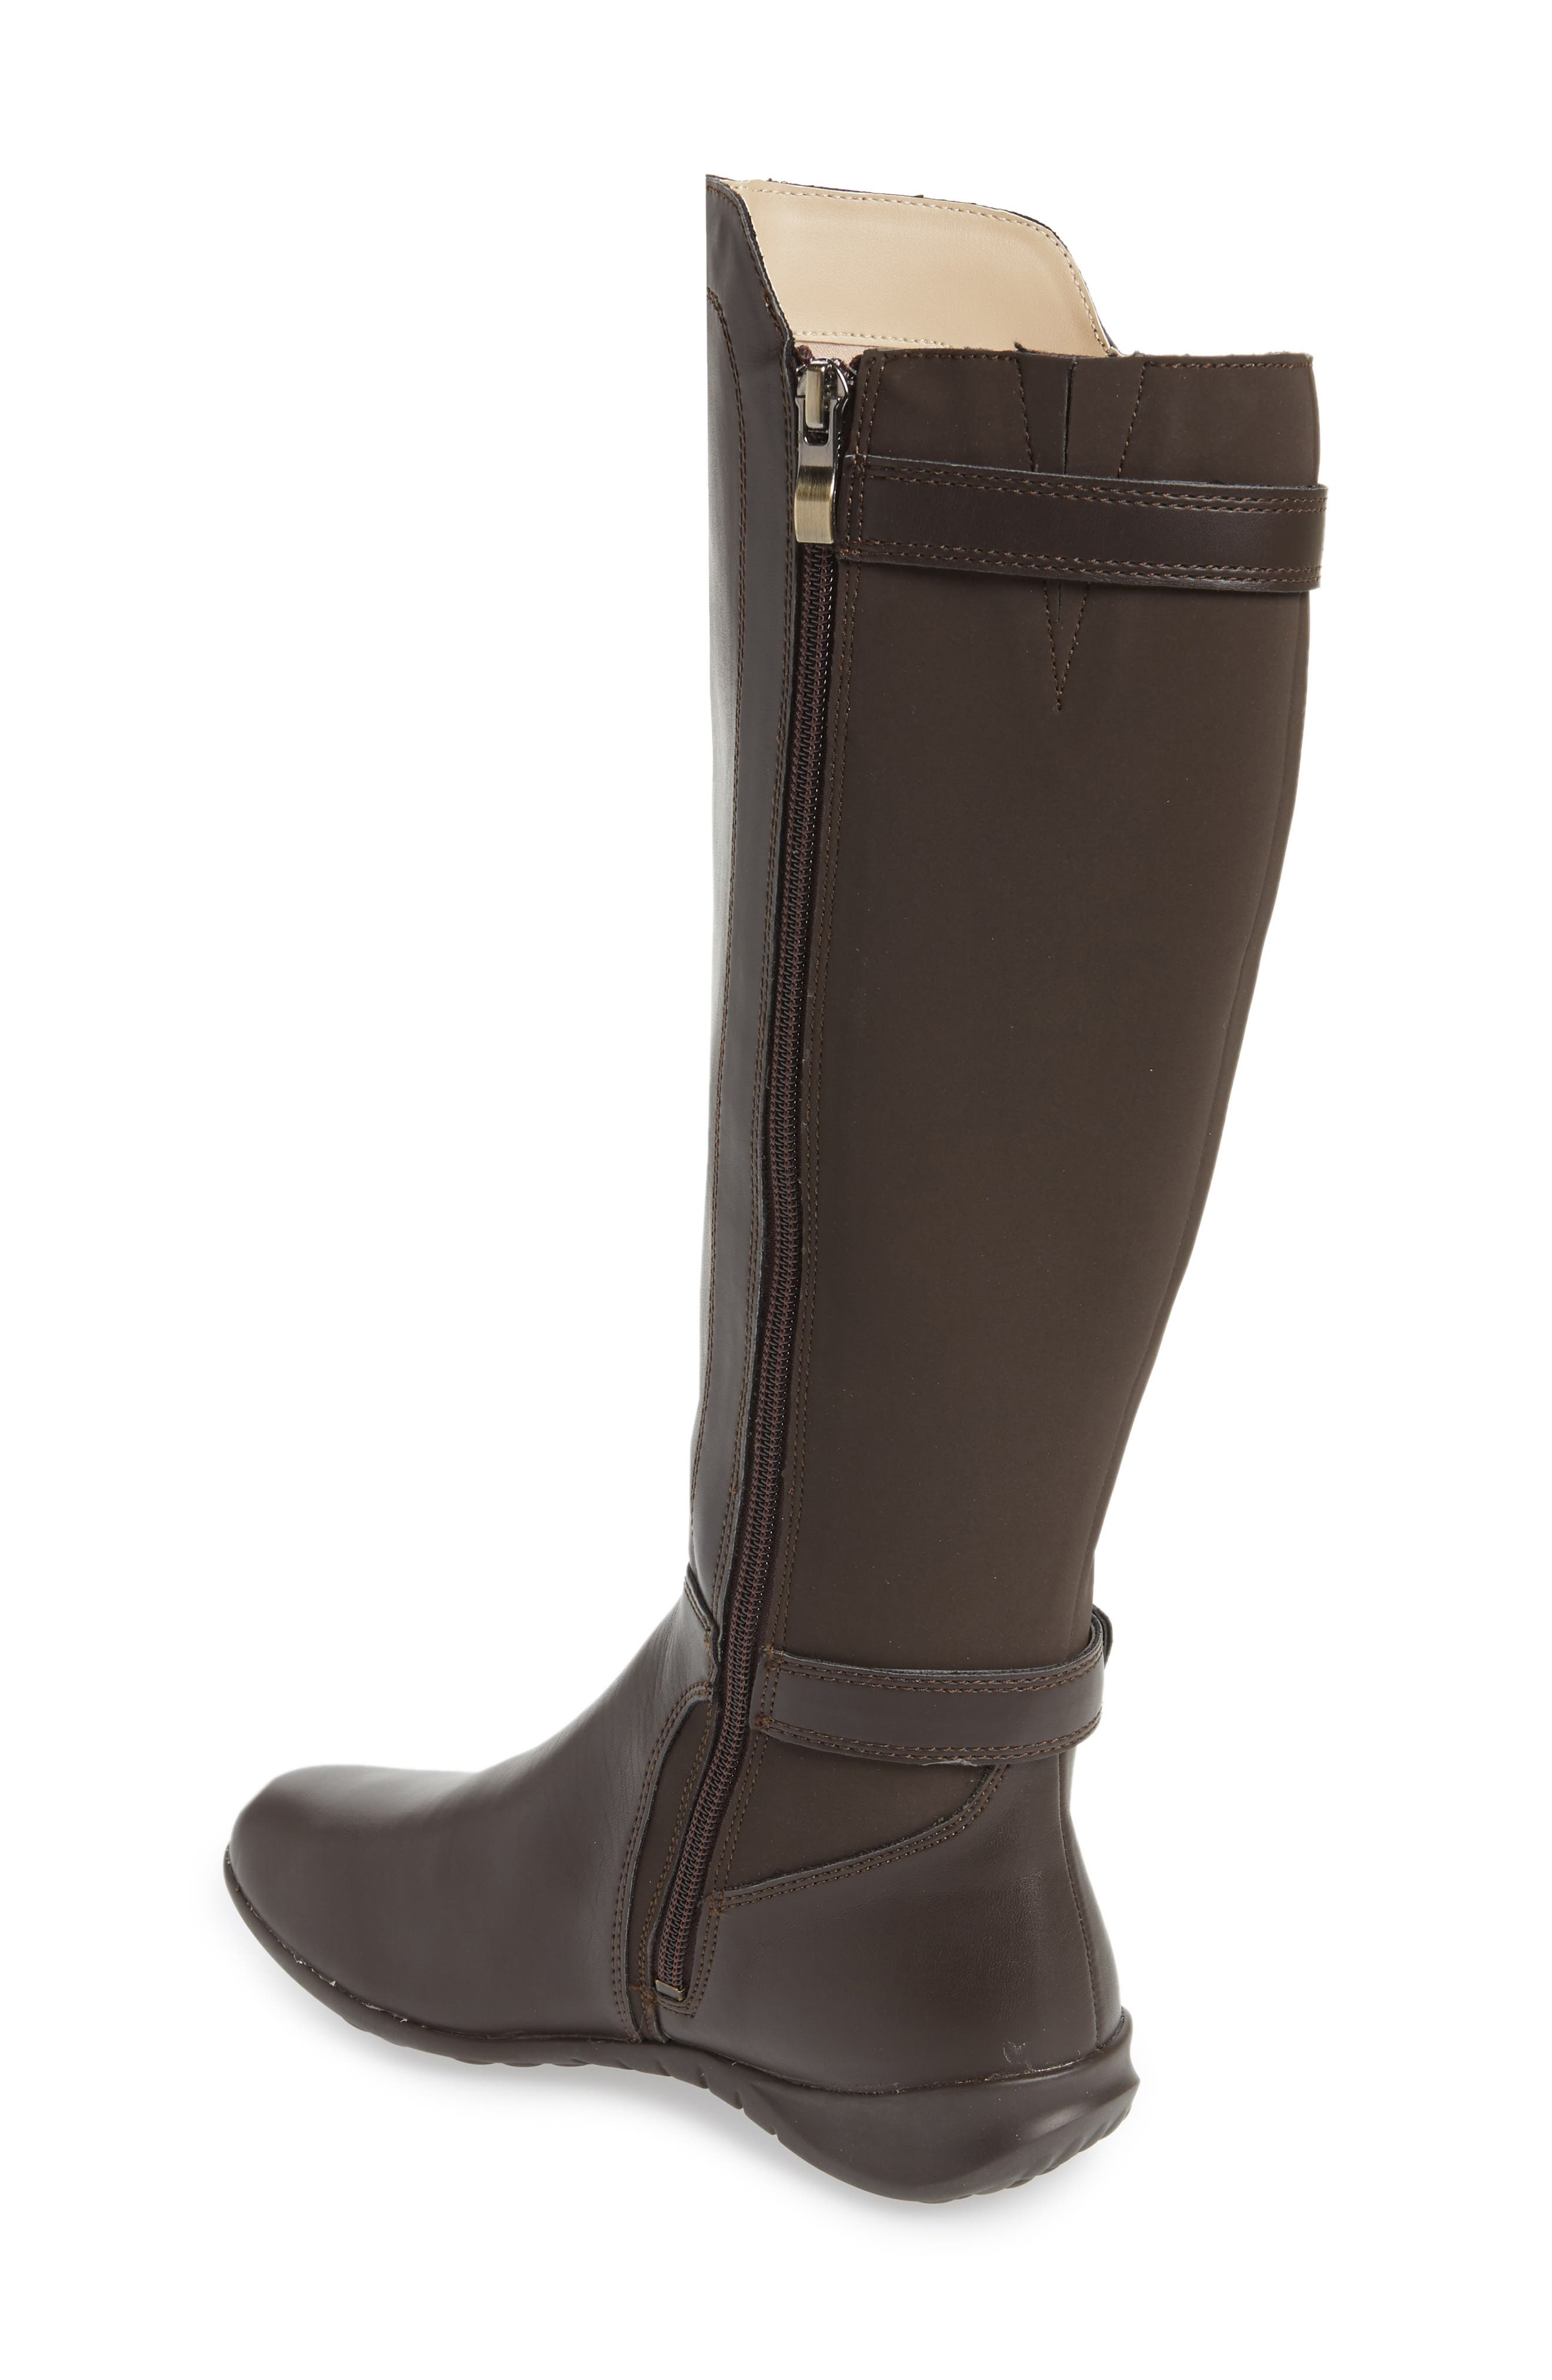 Bria Knee High Boot,                             Alternate thumbnail 2, color,                             DARK BROWN FAUX LEATHER